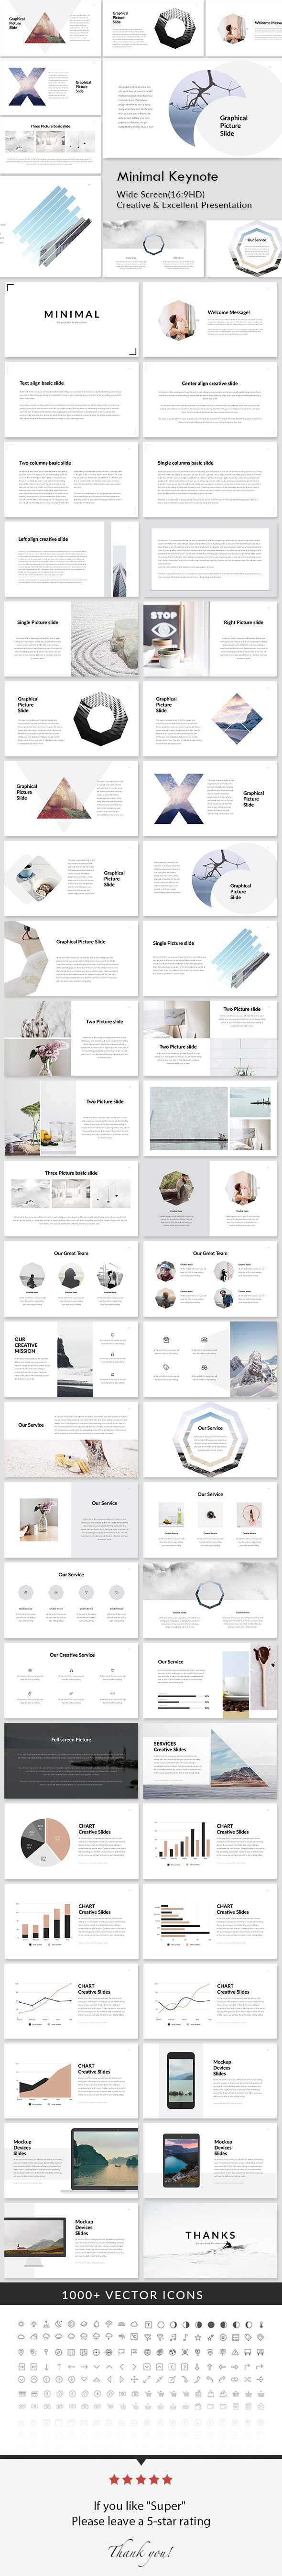 Minimal - Creative Keynote Presentation - Creative Keynote Templates